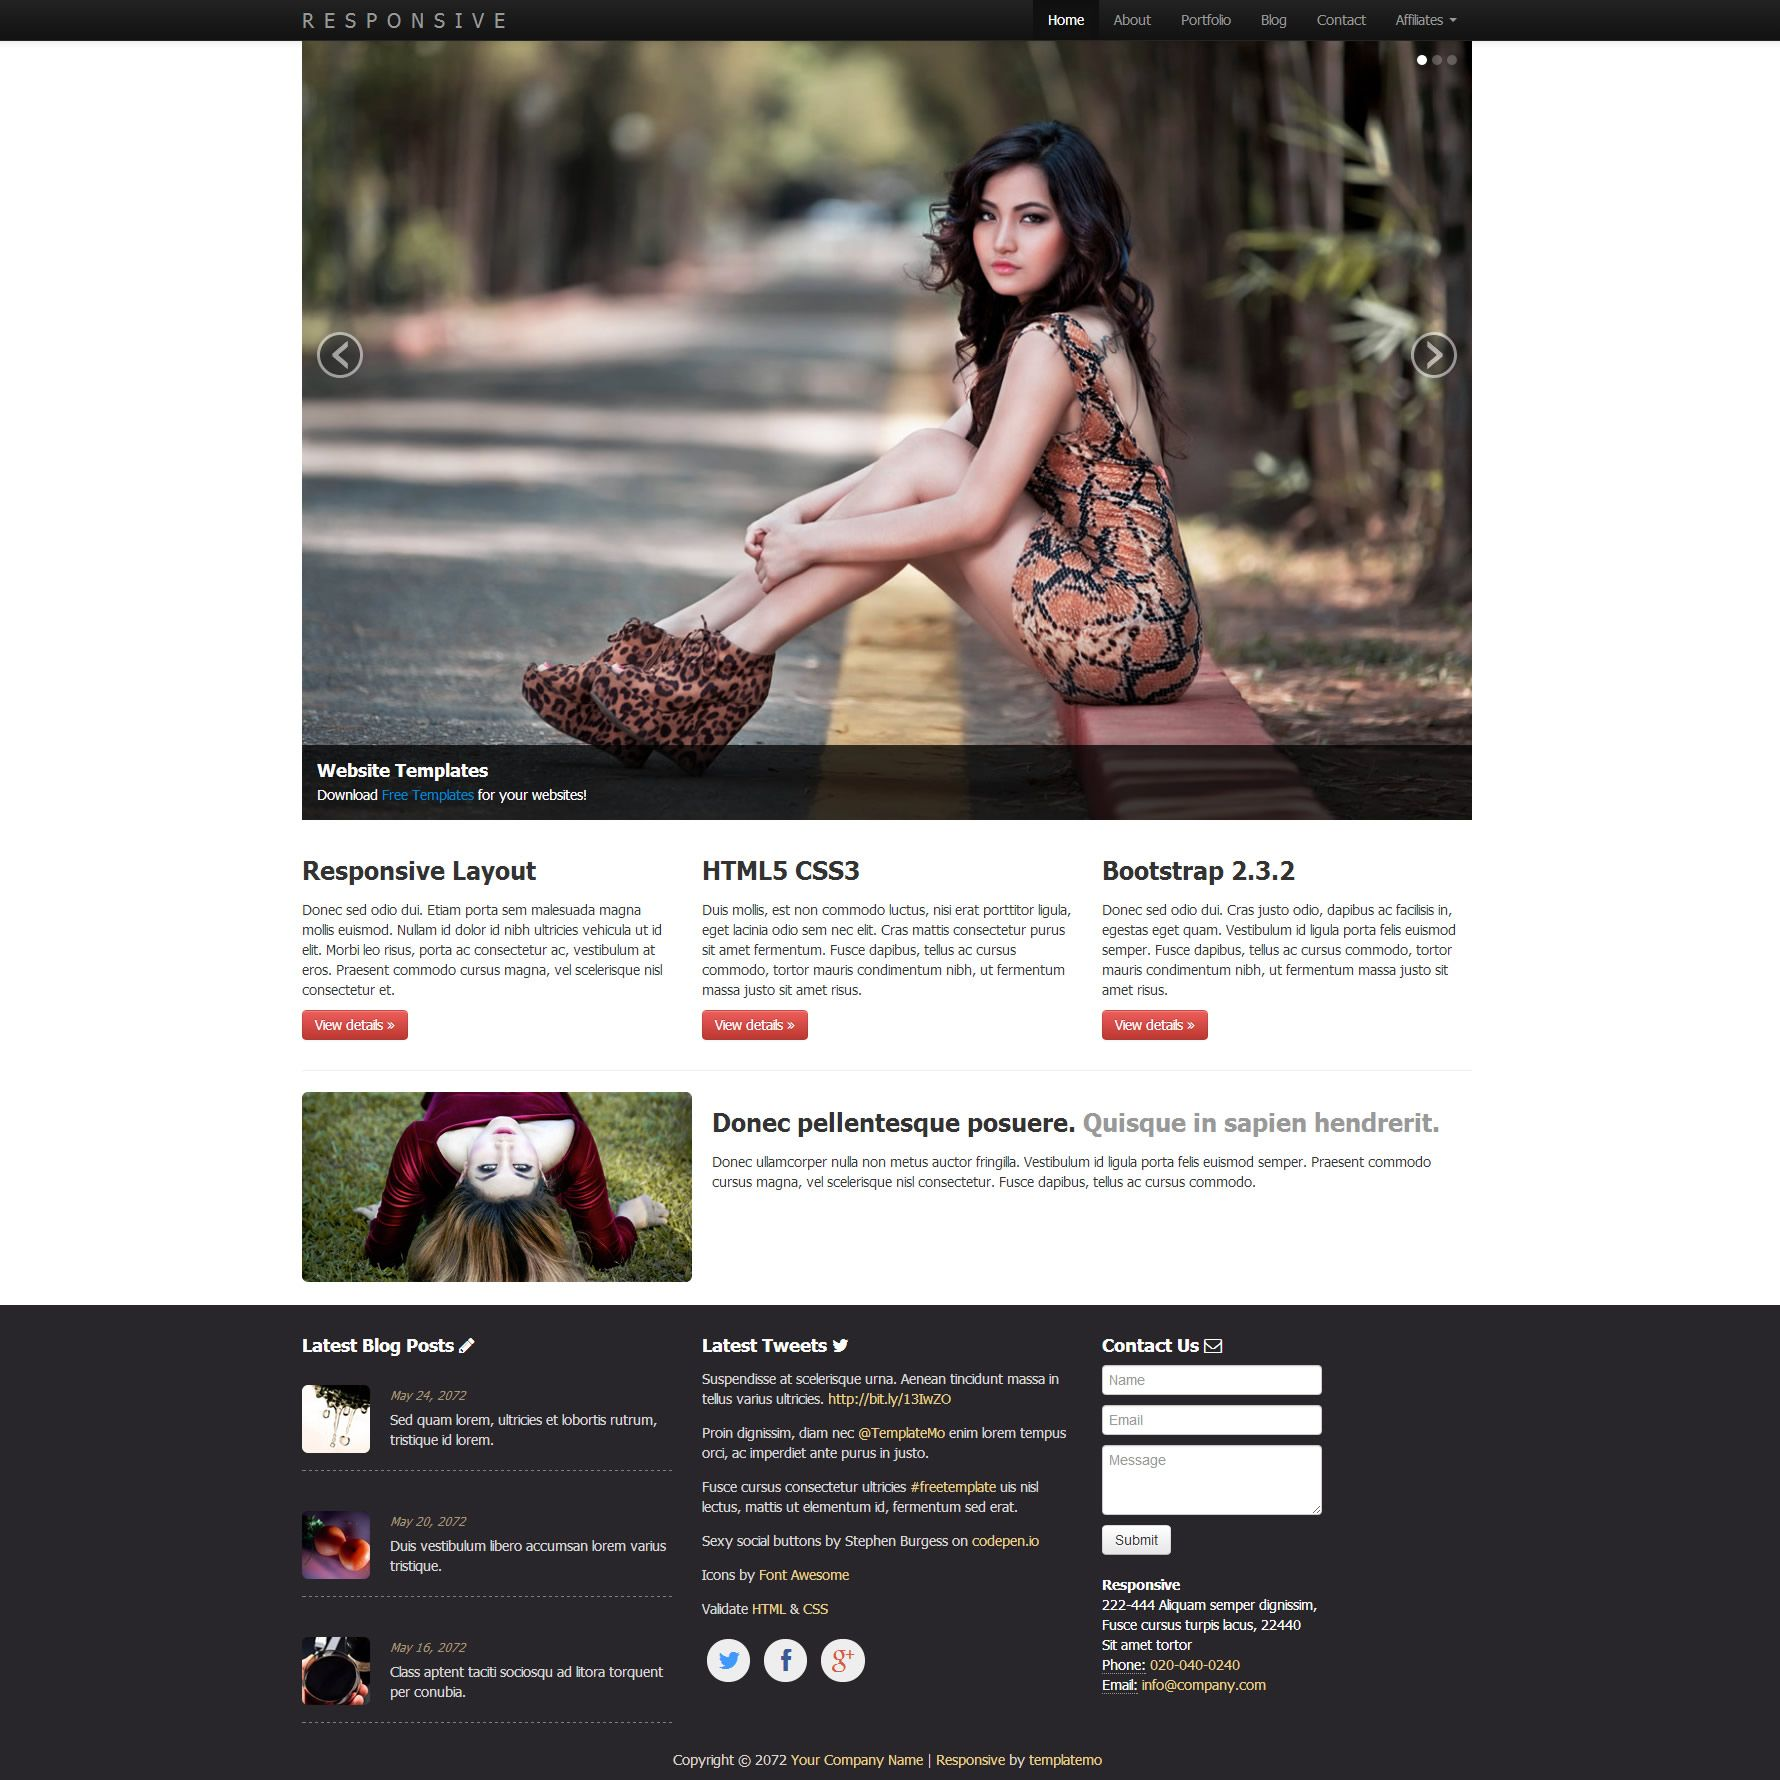 Html/Css Web Templates For Free Download | Freebies | Pinterest